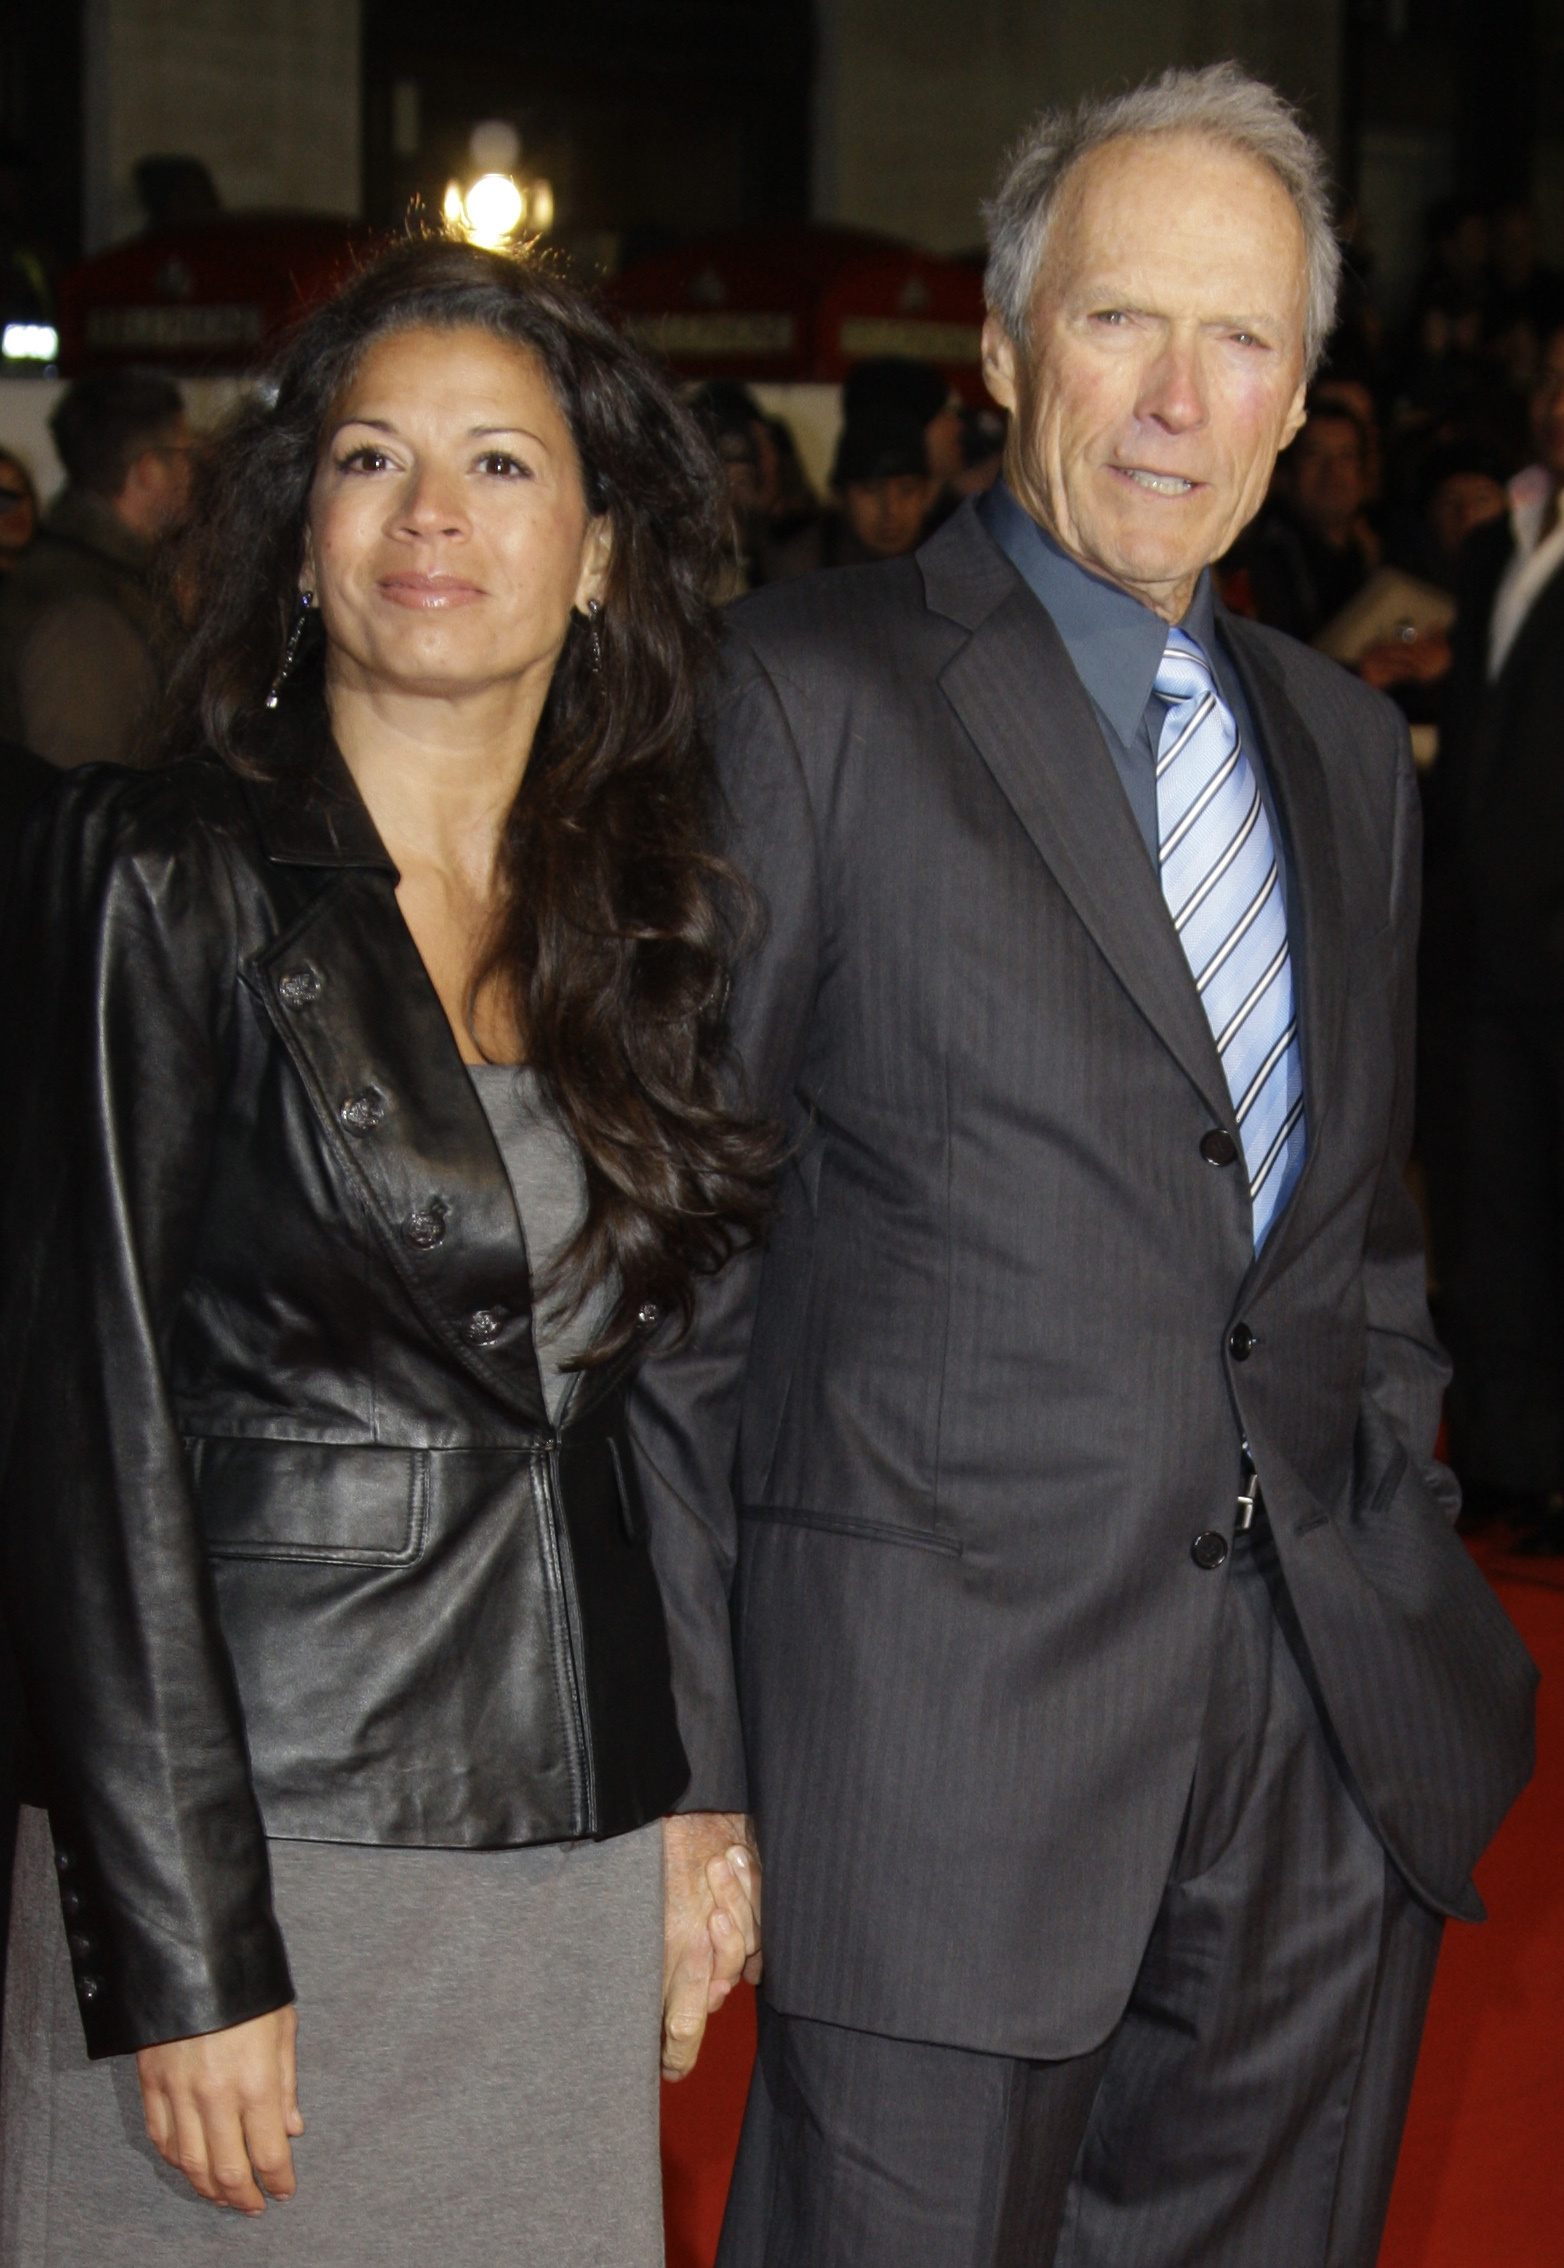 Dina Eastwood, left, has filed for a legal separation from actor and director Clint Eastwood.